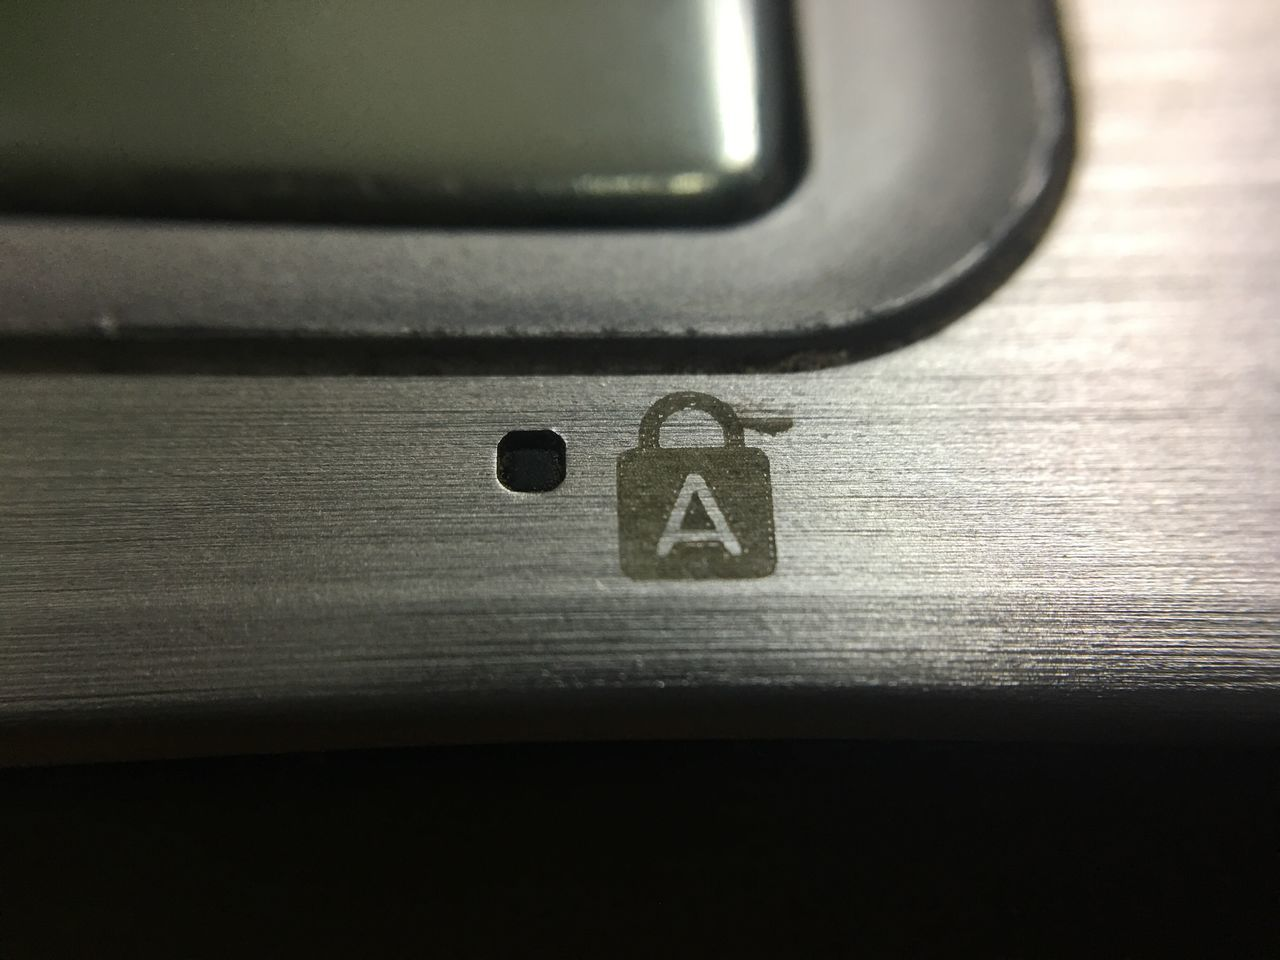 Status Macro Iron - Metal Stainless Steel  Silver - Metal Aluminum No People Close-up Indoors  Day Doodle Sign LED Symbol Surface Key Lock